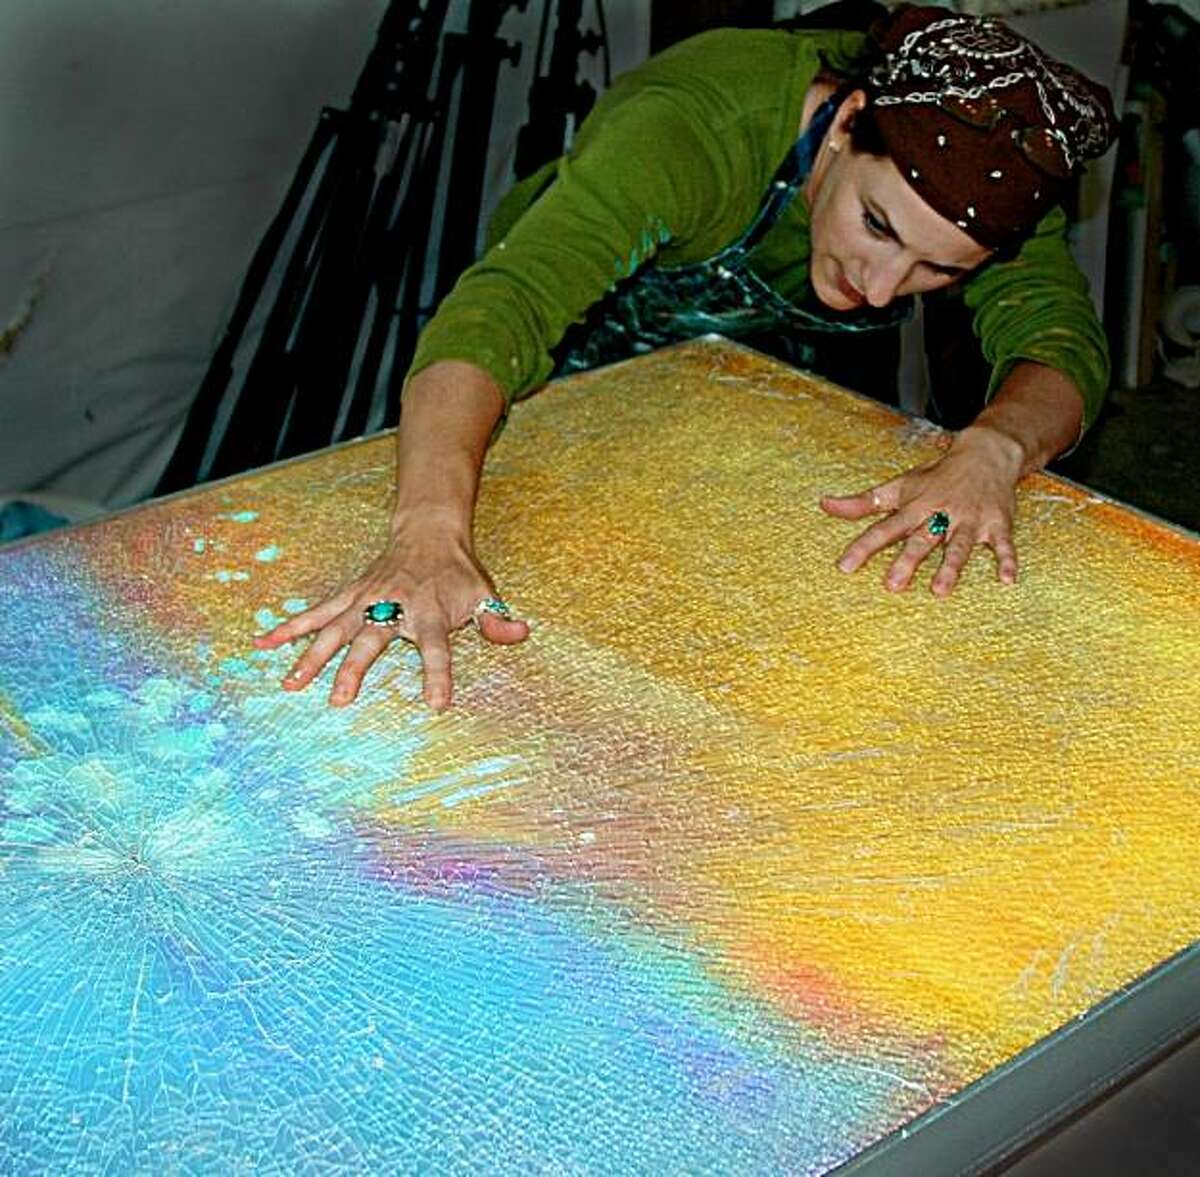 eglomise artist Cassandria Blackmore uses a shattered-glass technique to create abstract paintings.